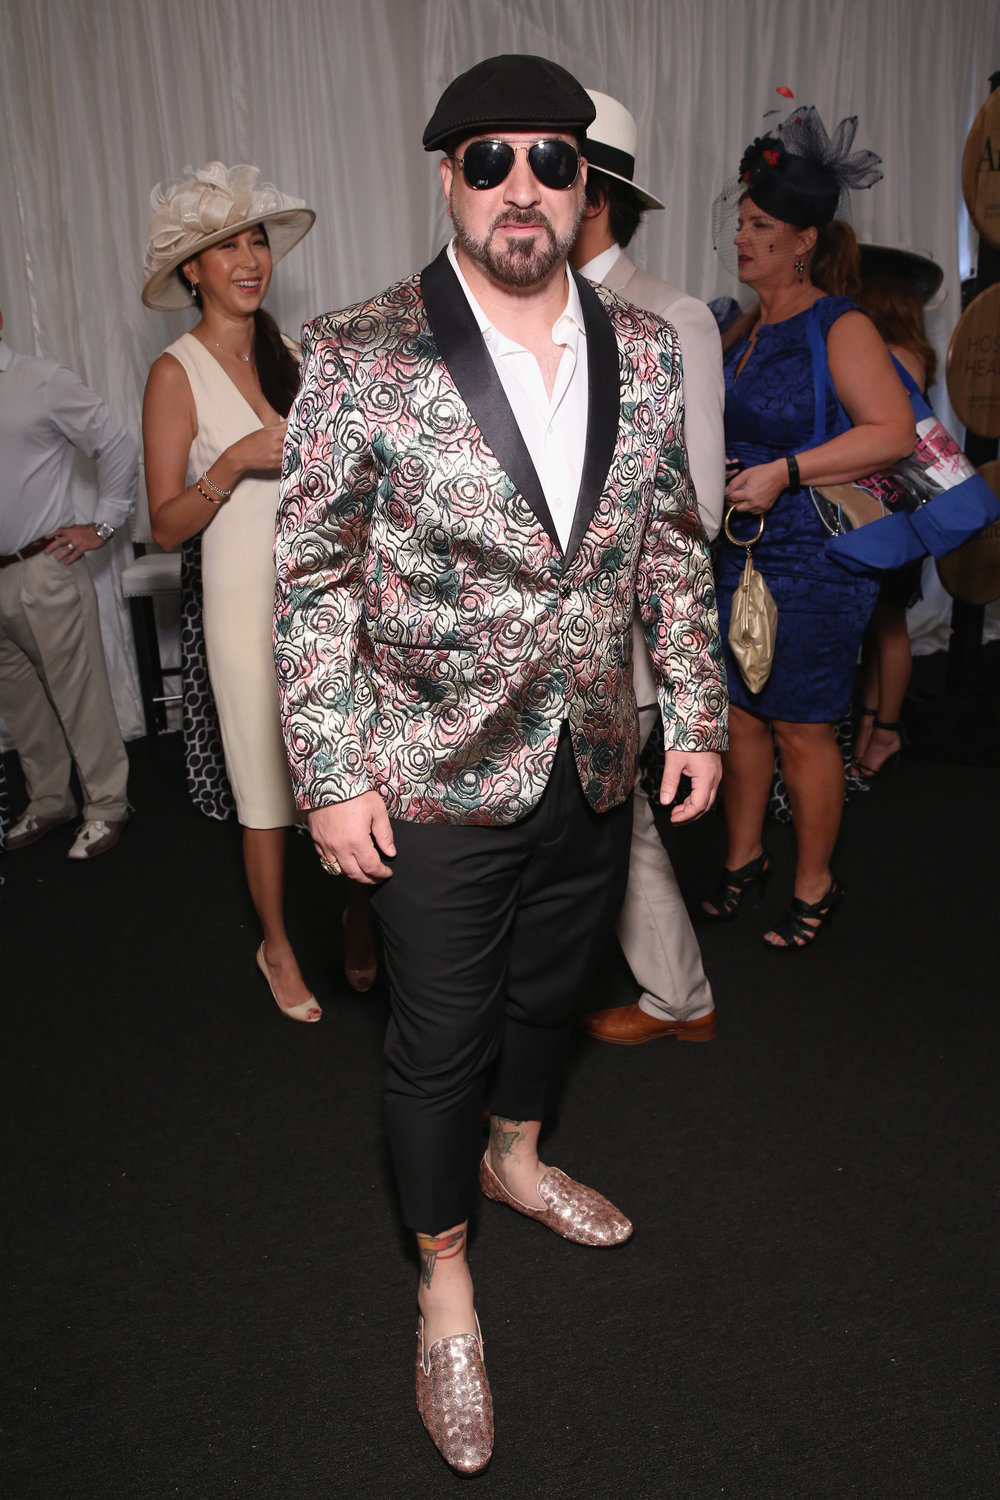 LOUISVILLE, KY - MAY 05:  Joey Fatone attends Kentucky Derby 144 on May 5, 2018 in Louisville, Kentucky.  (Photo by Robin Marchant/Getty Images for Churchill Downs) *** Local Caption *** Joey Fatone